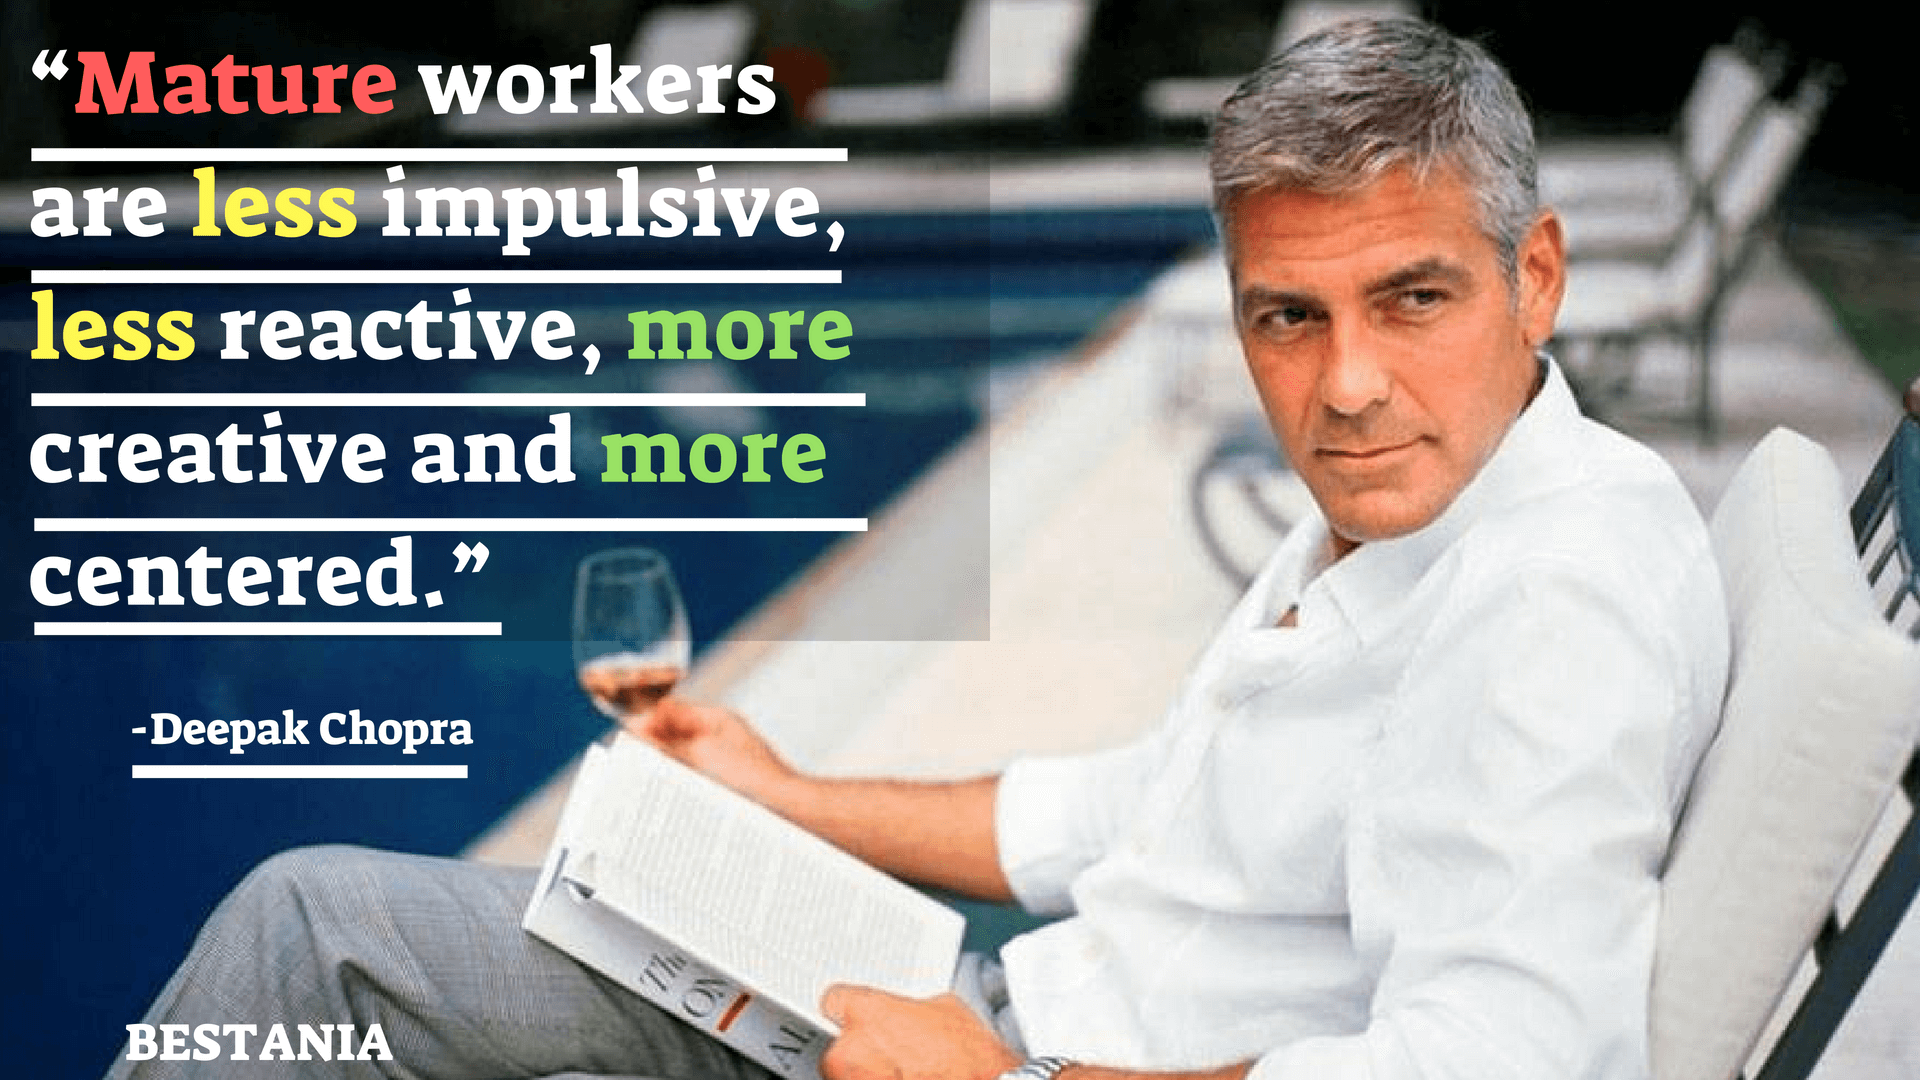 """MATURE WORKERS ARE LESS IMPULSIVE, LESS REACTIVE, MORE CREATIVE AND MORE CENTERED."" – DEEPAK CHOPRA"